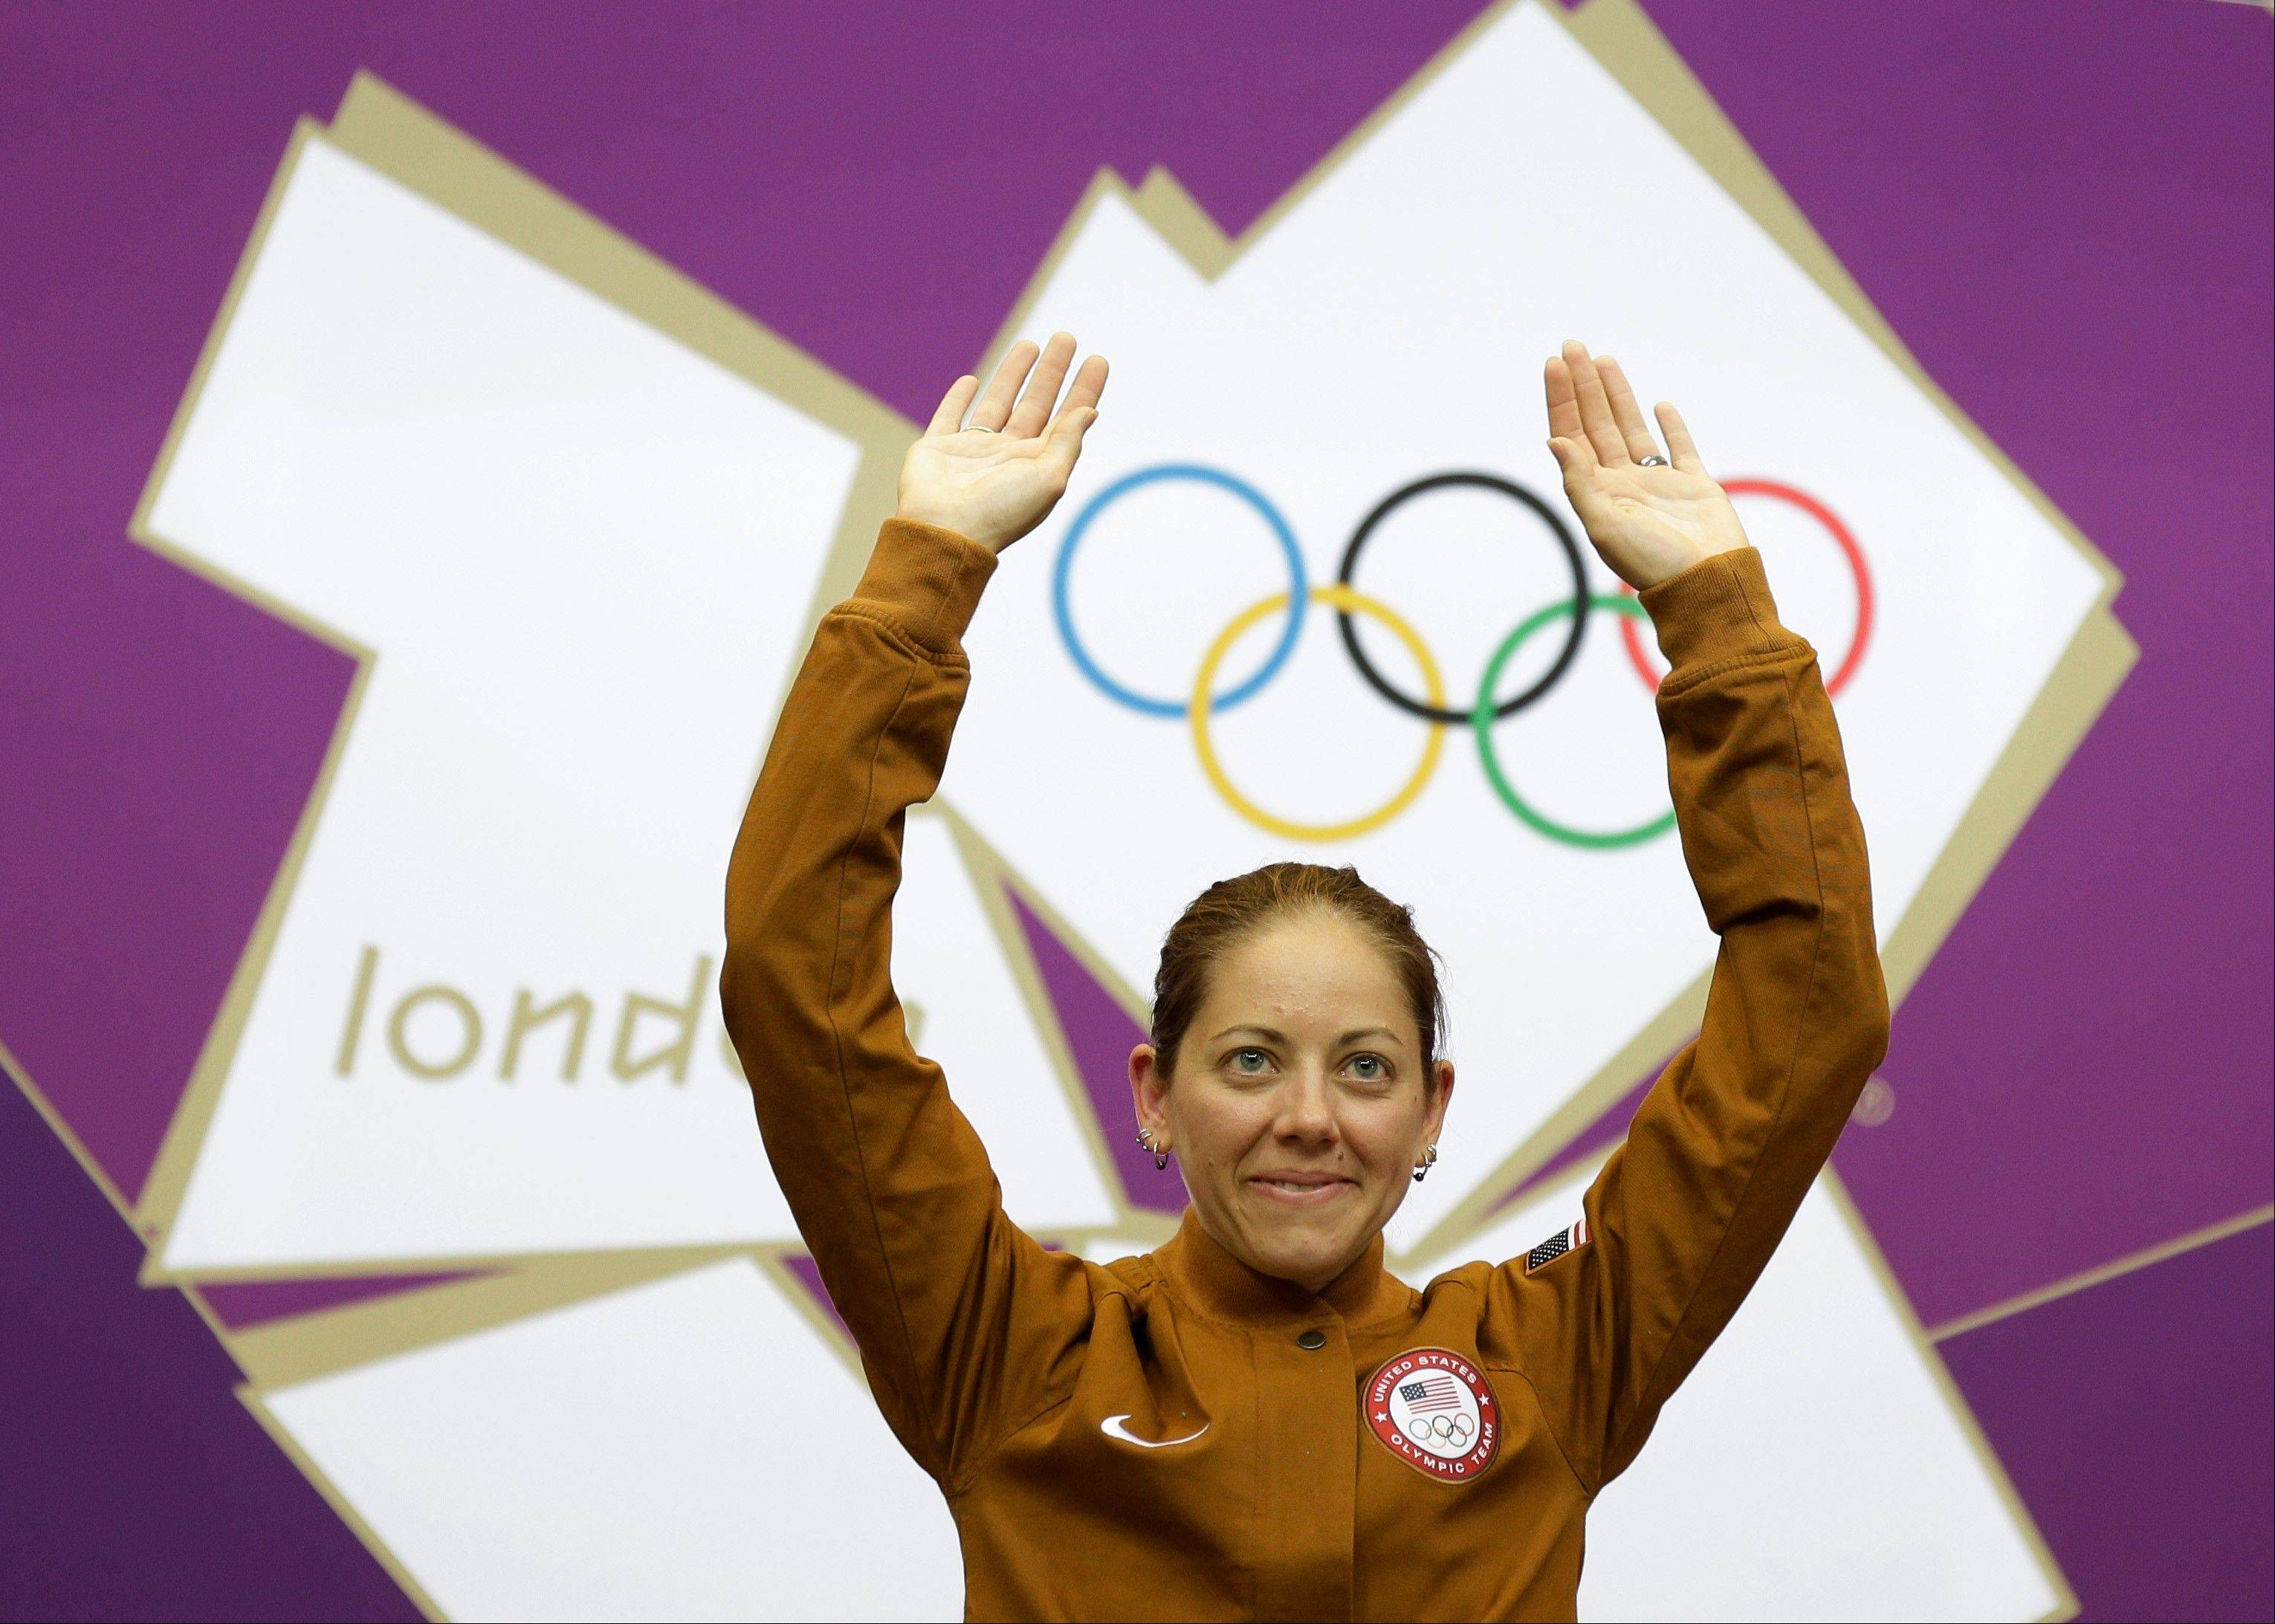 United States of America's Jamie Lynn Gray celebrates winning the gold medal in the women's 50-meter rifle 3 positions event, at the 2012 Summer Olympics, Saturday, Aug. 4, 2012, in London.